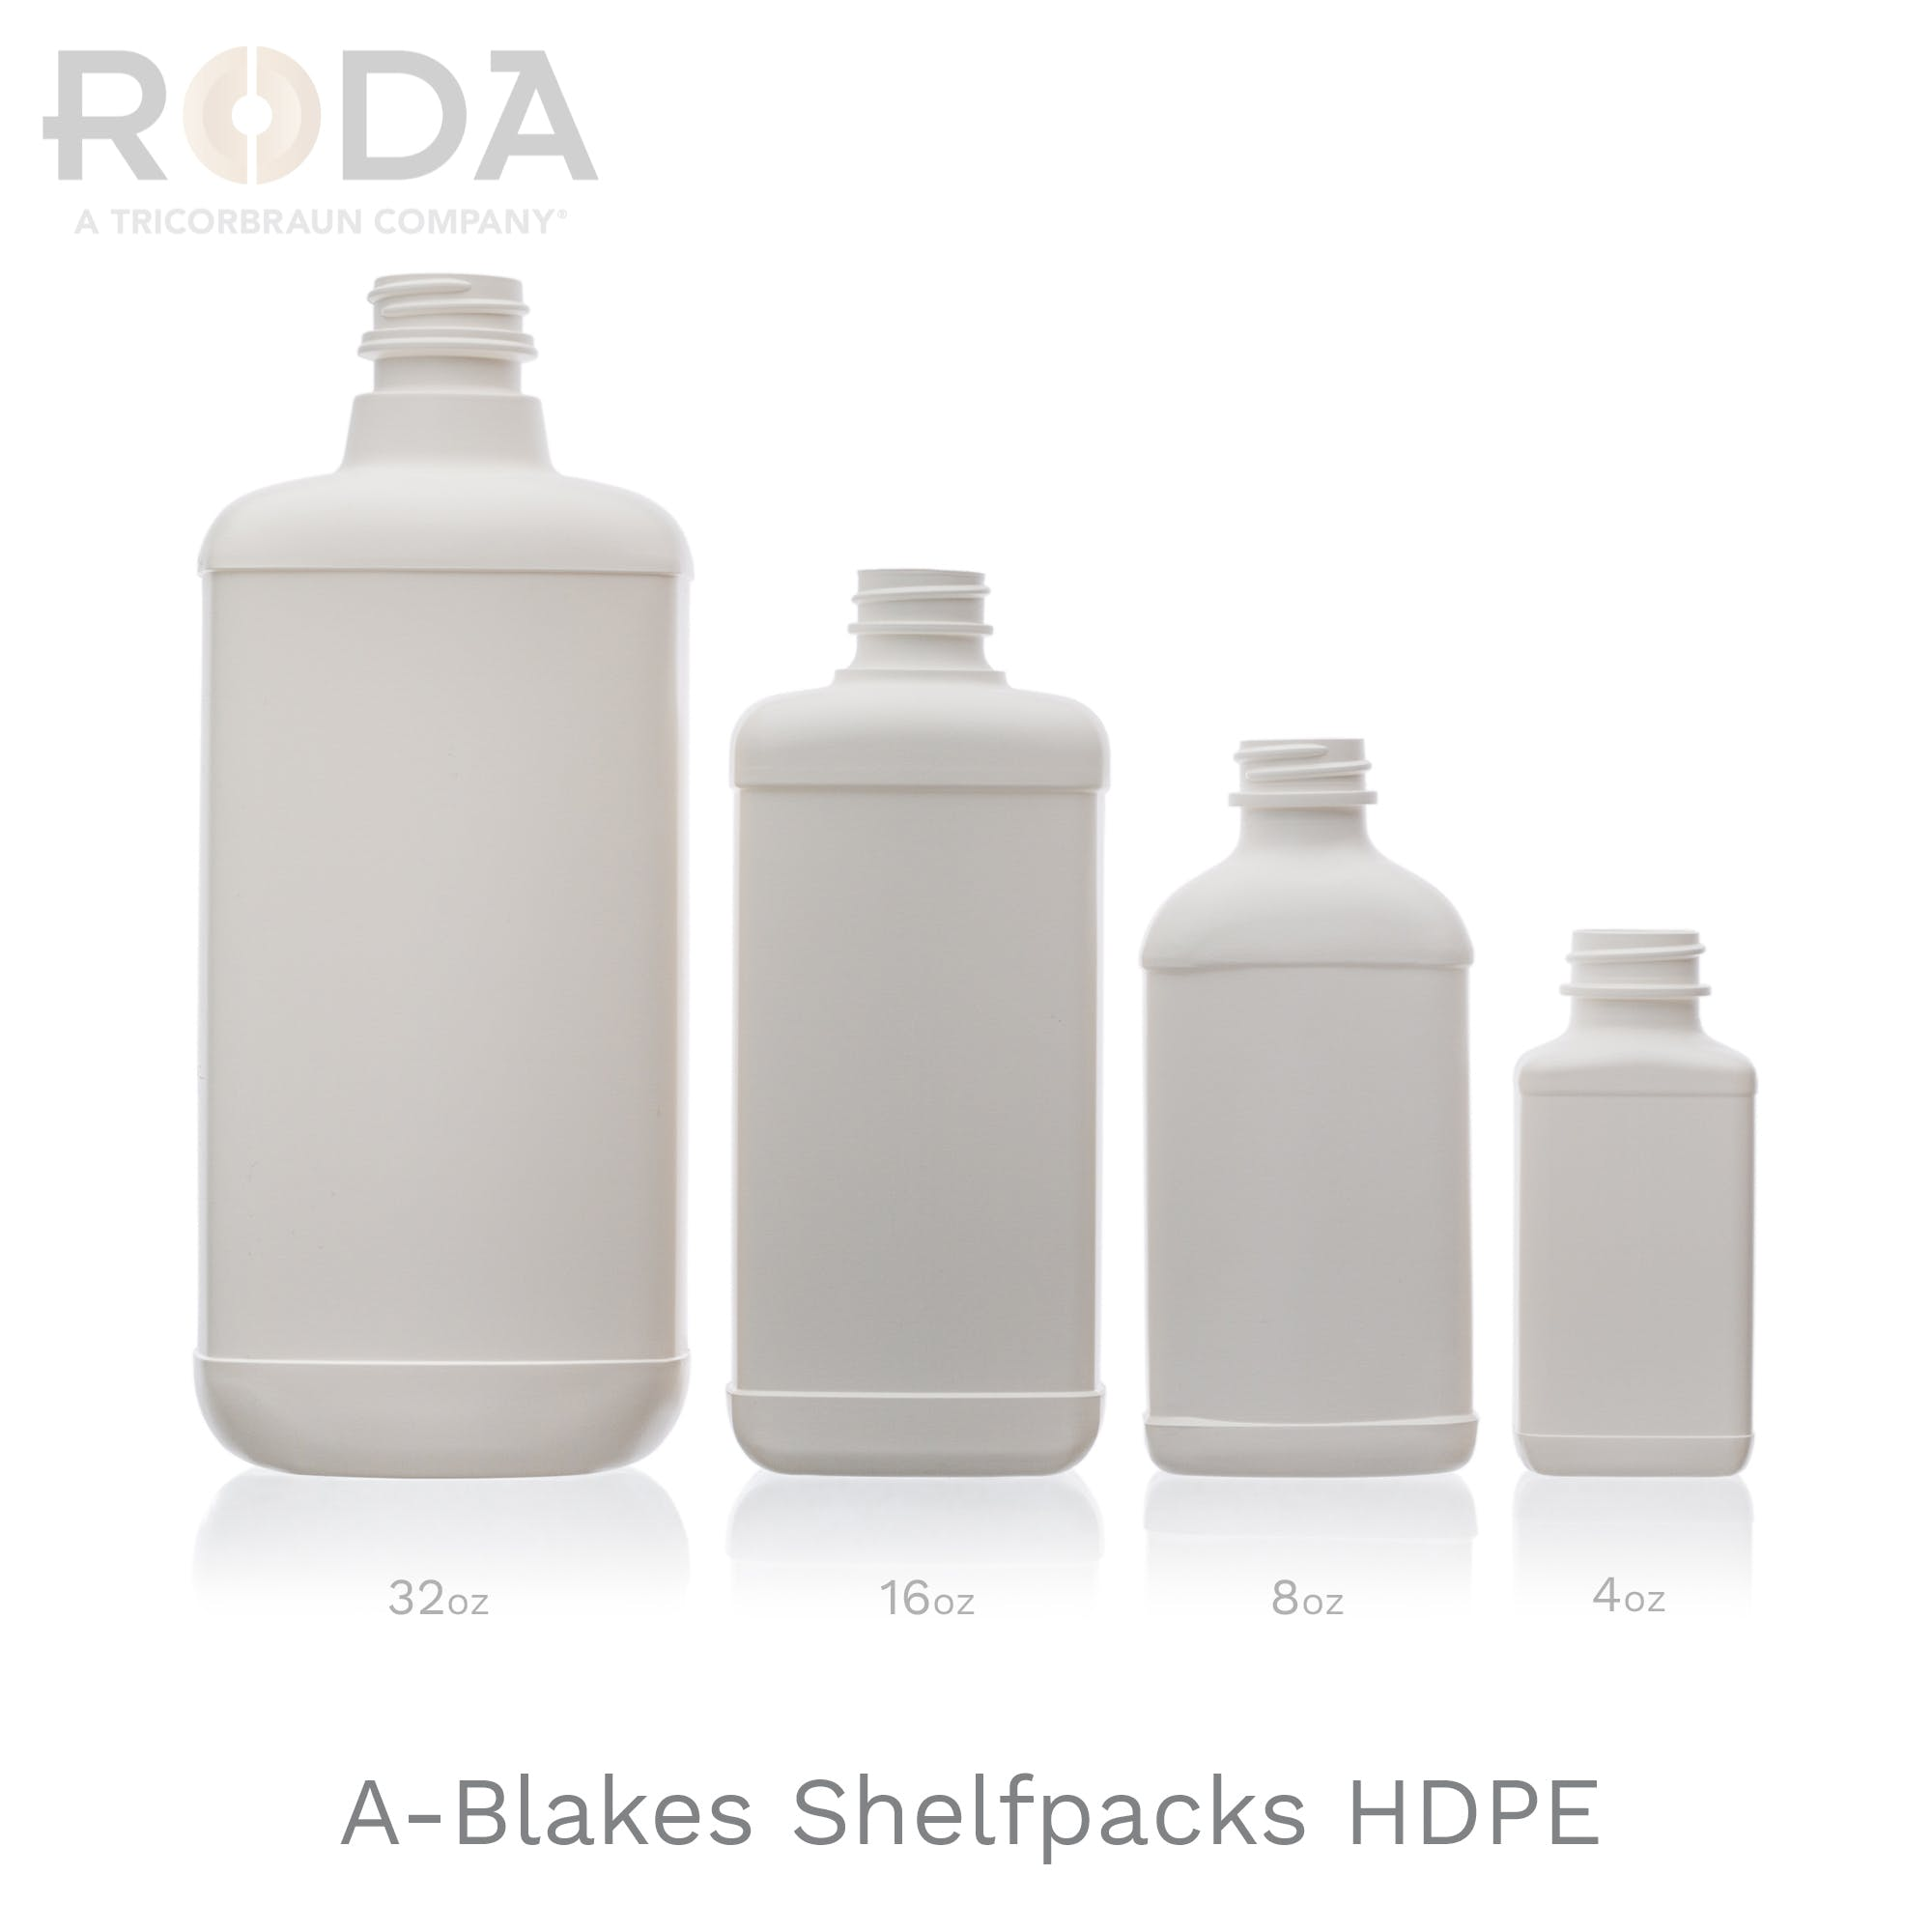 A-Blakes Shelfpacks HDPE